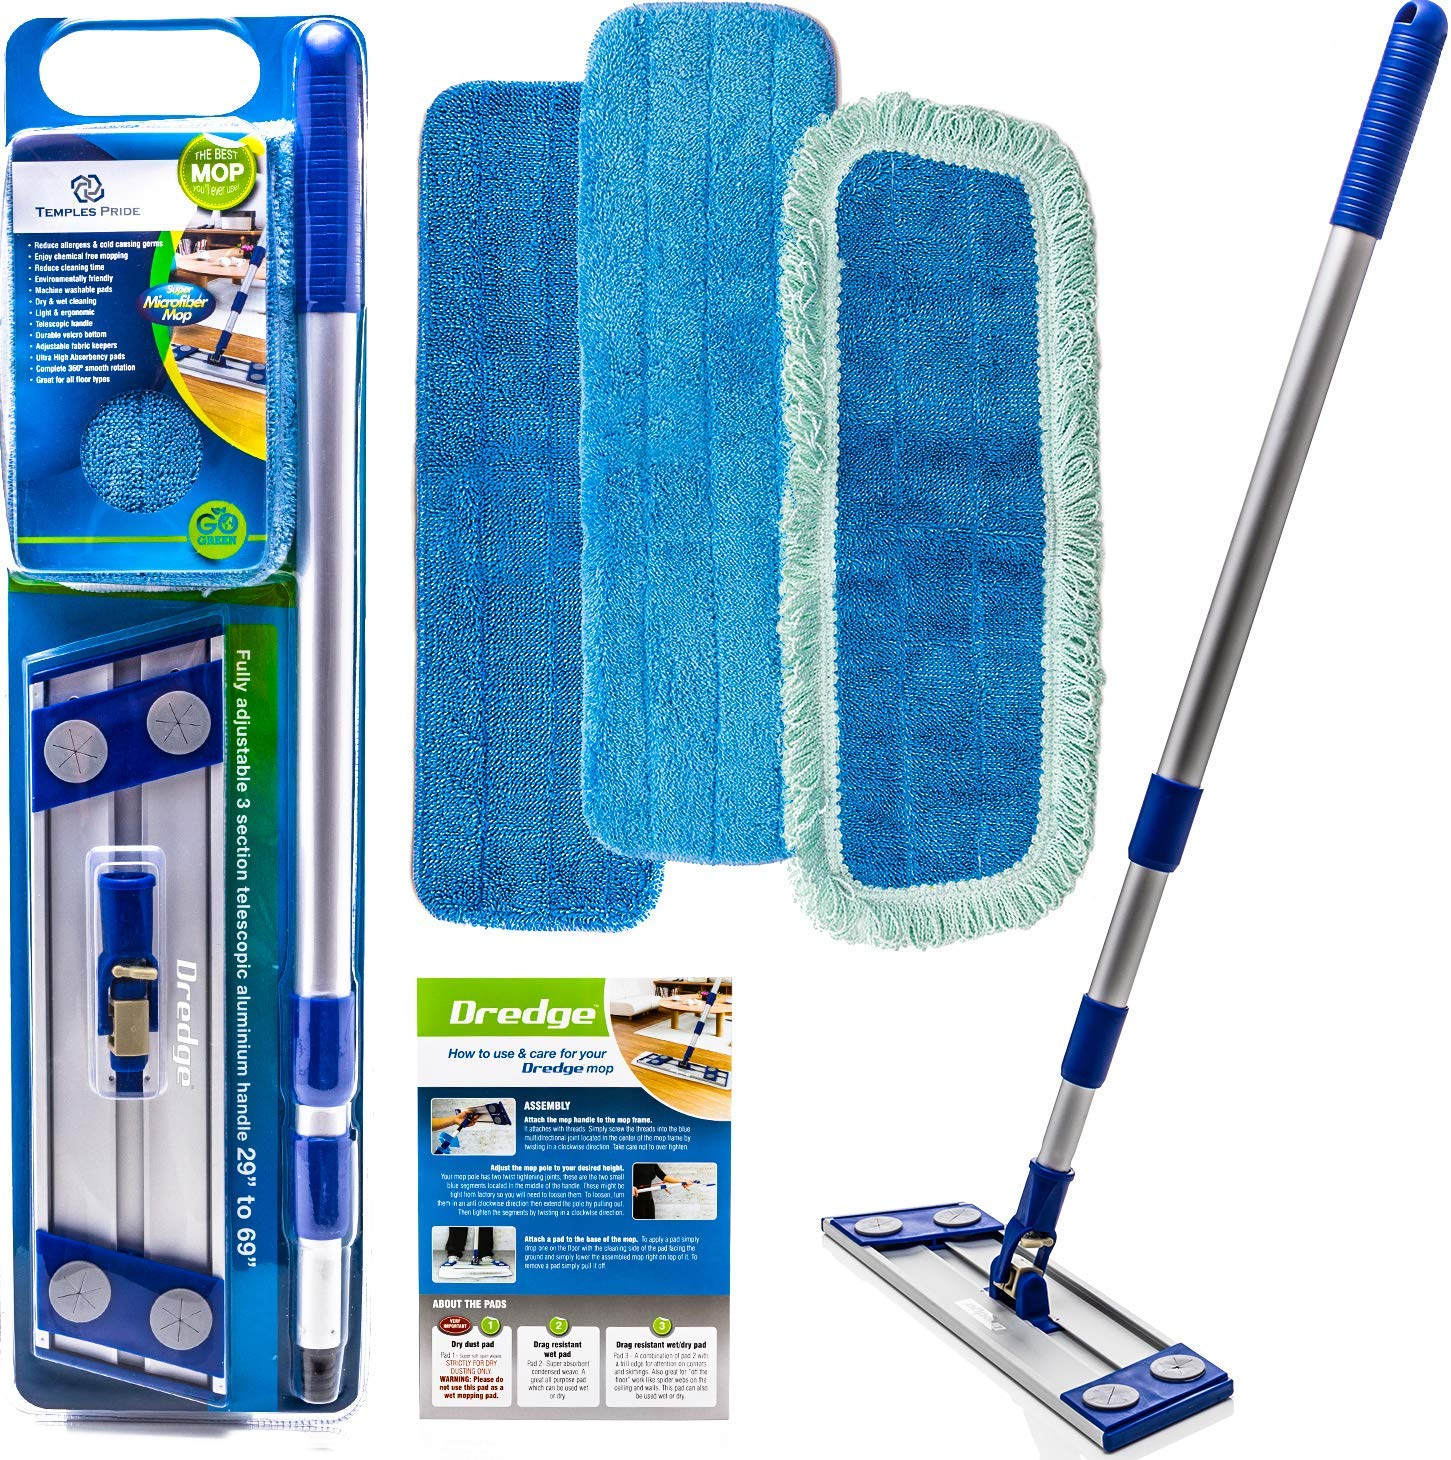 Best Microfiber Mop: Dredge All-in-One Kit